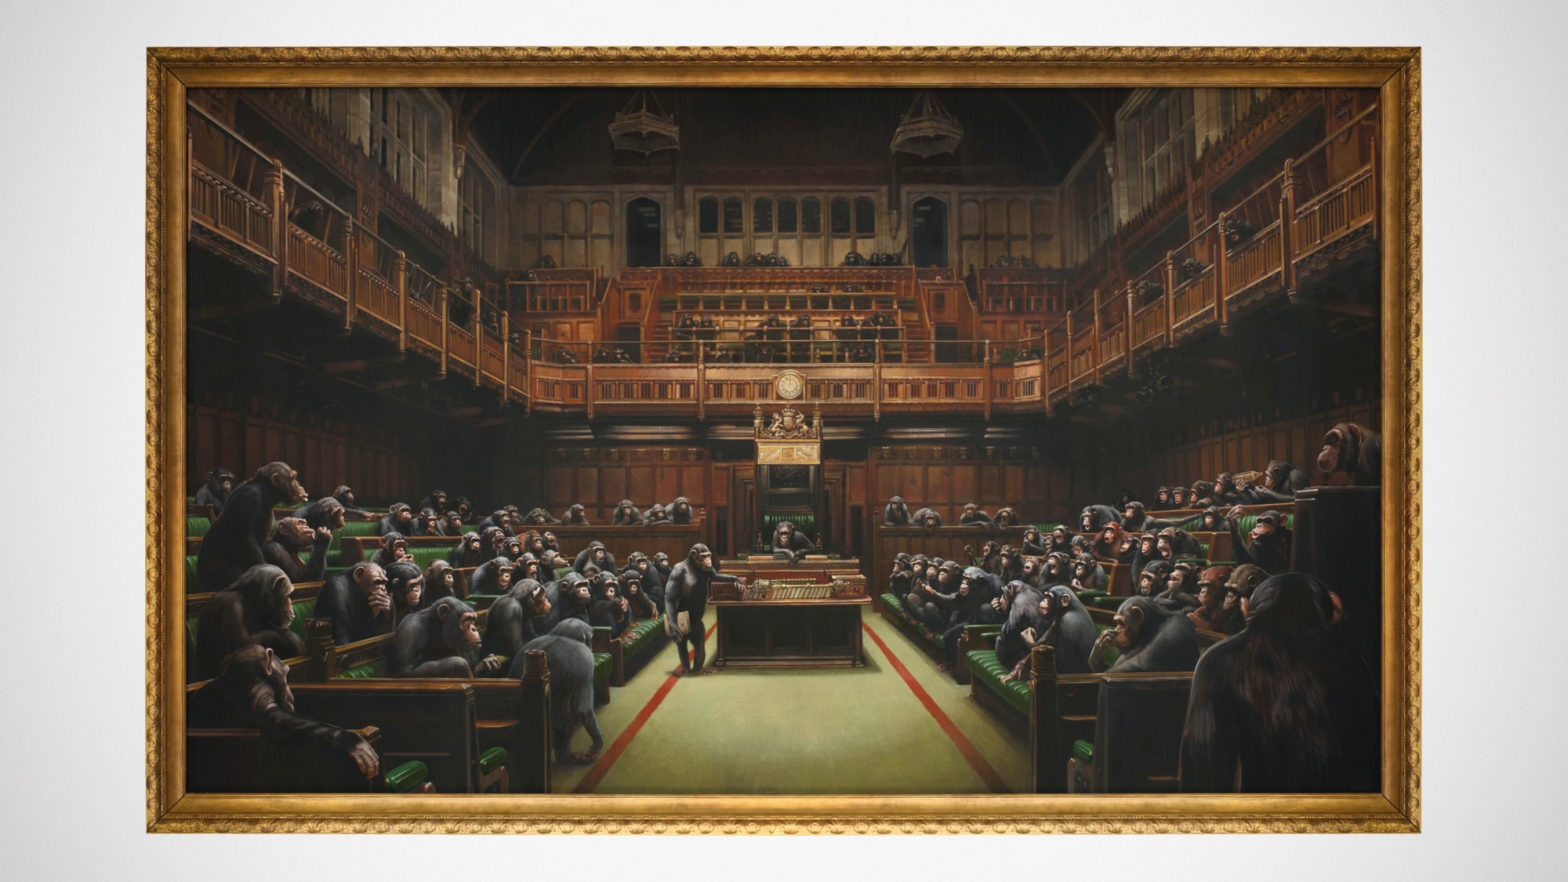 Devolved Parliament by Banksy Auction